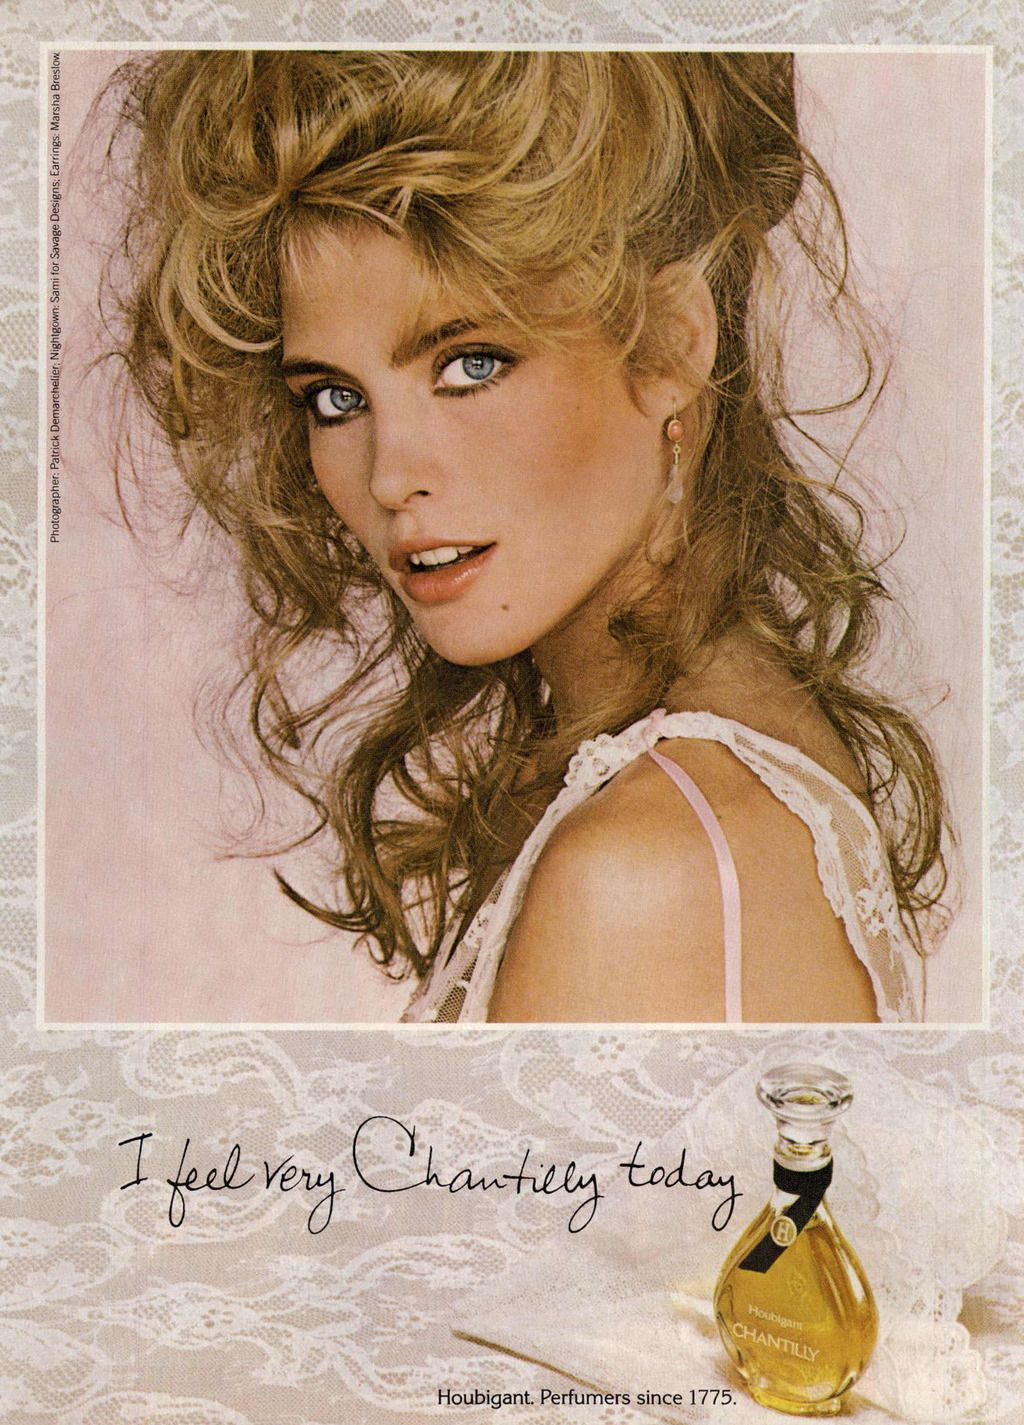 Houbigant Ad Campaign Chantilly - I feel very Chantilly today - love it